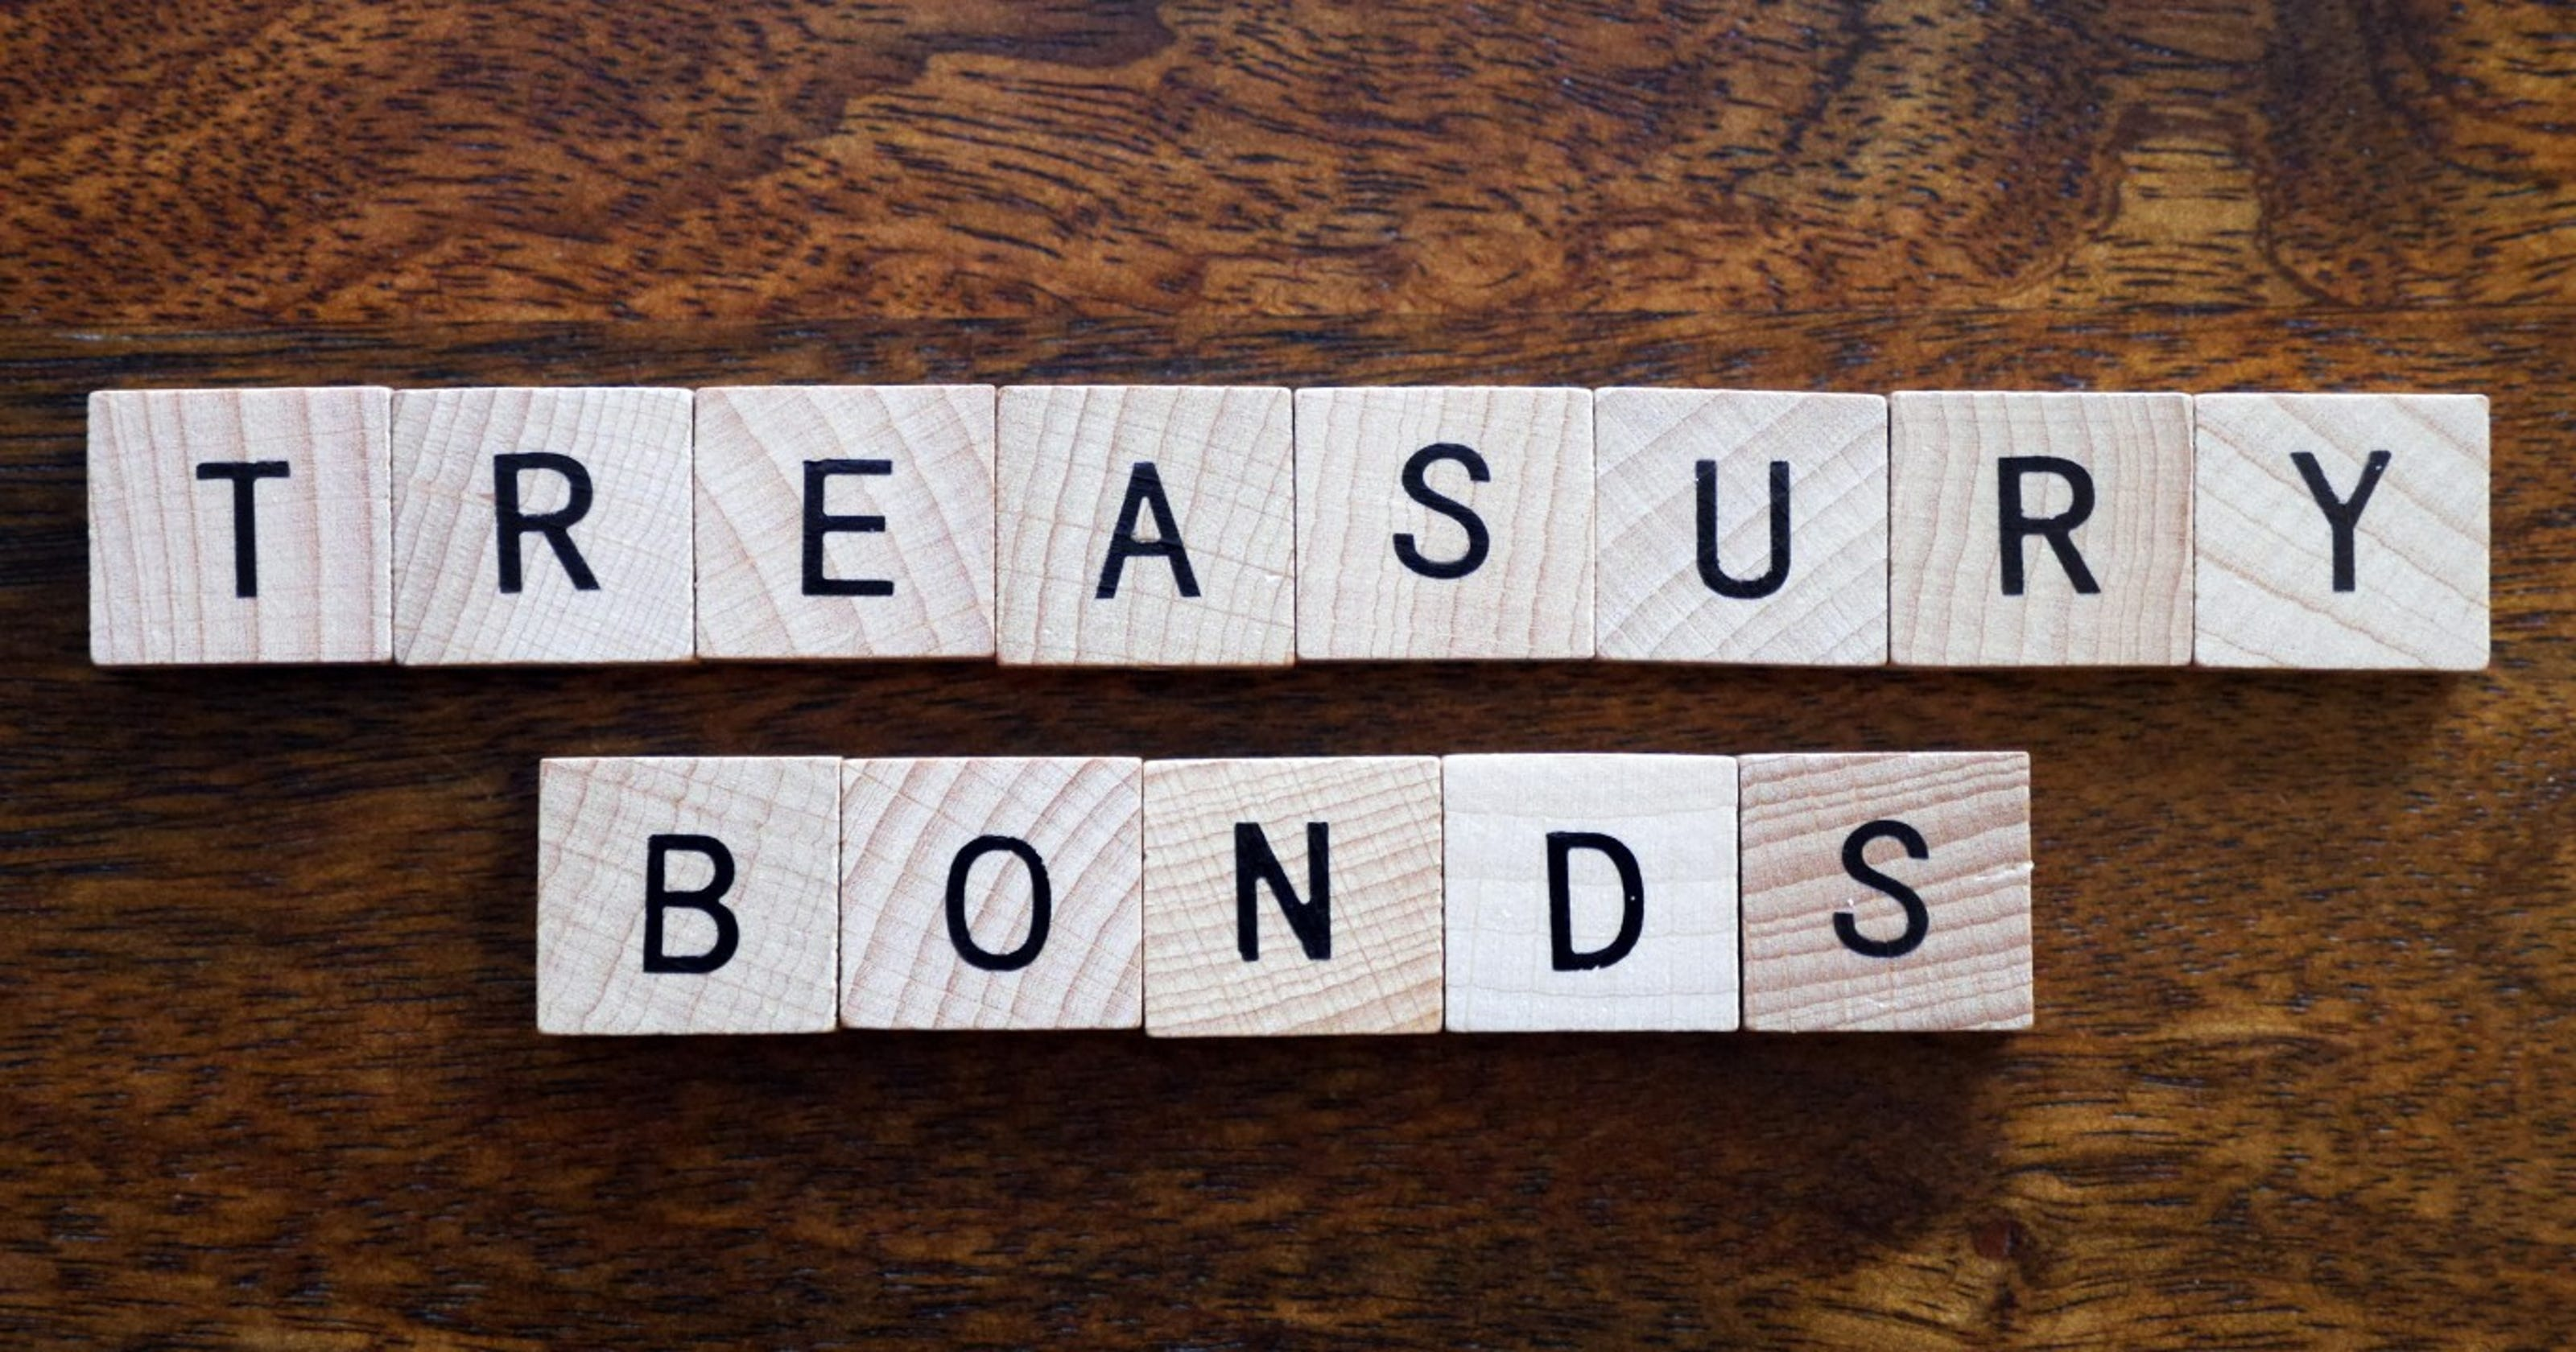 Bonds aren't a set-it-and-forget-it investment. Here's what you need to know.